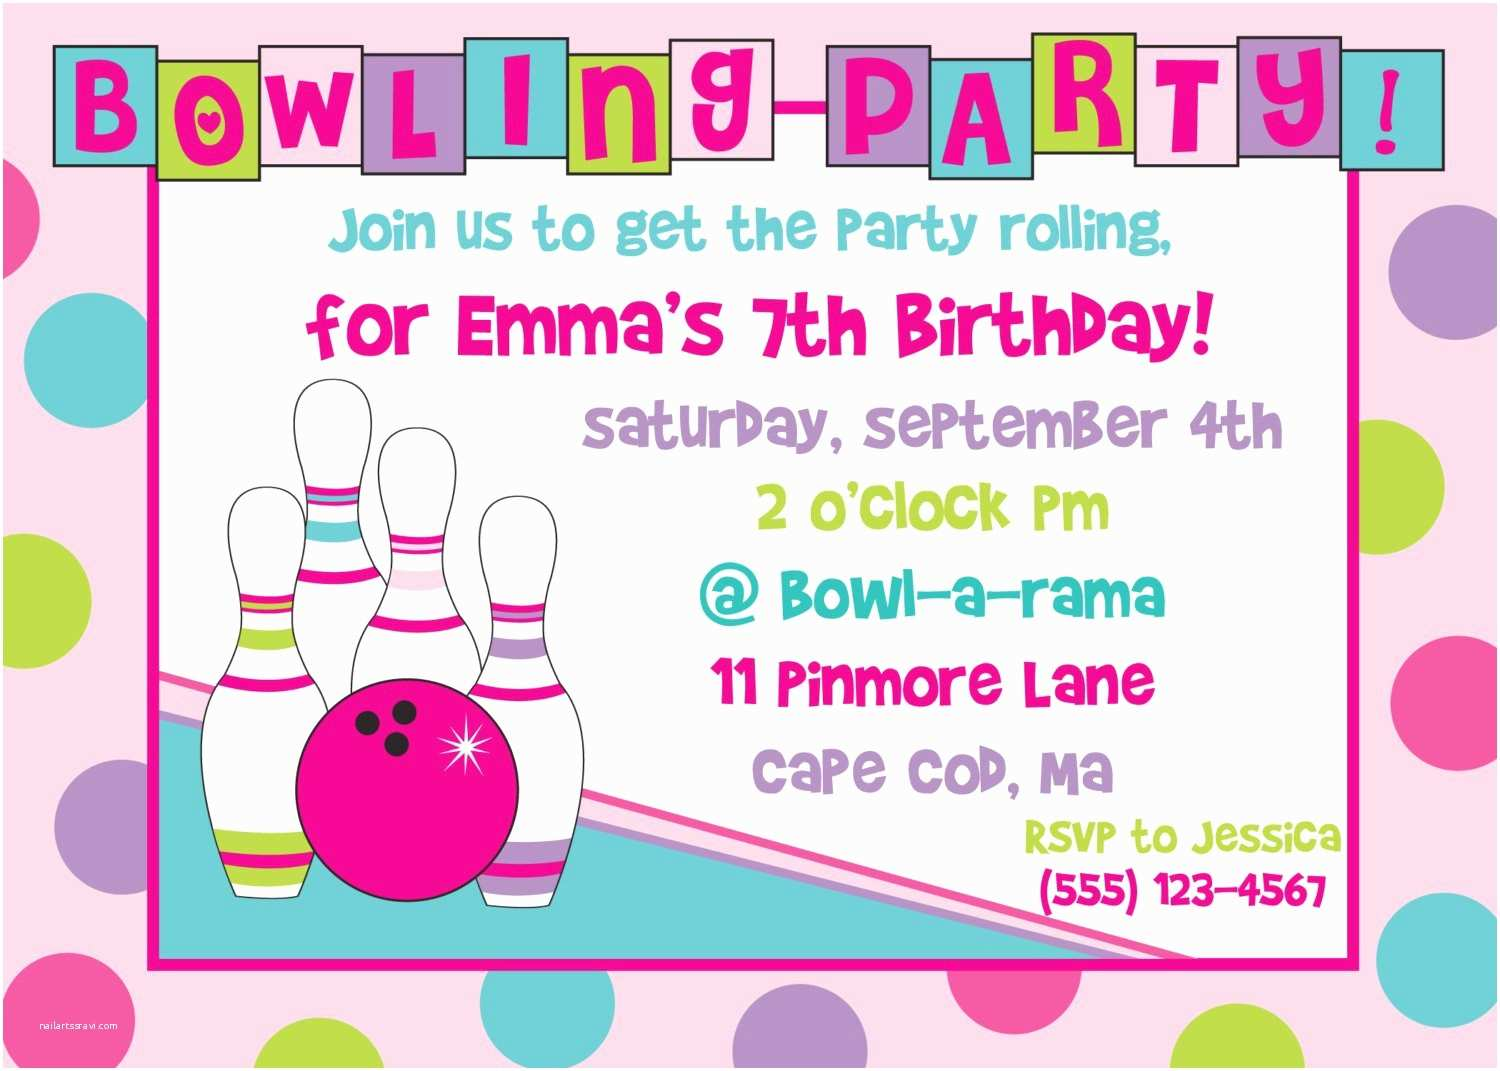 Printable Party Invitations Bowling Birthday Party Invitations Free Templates